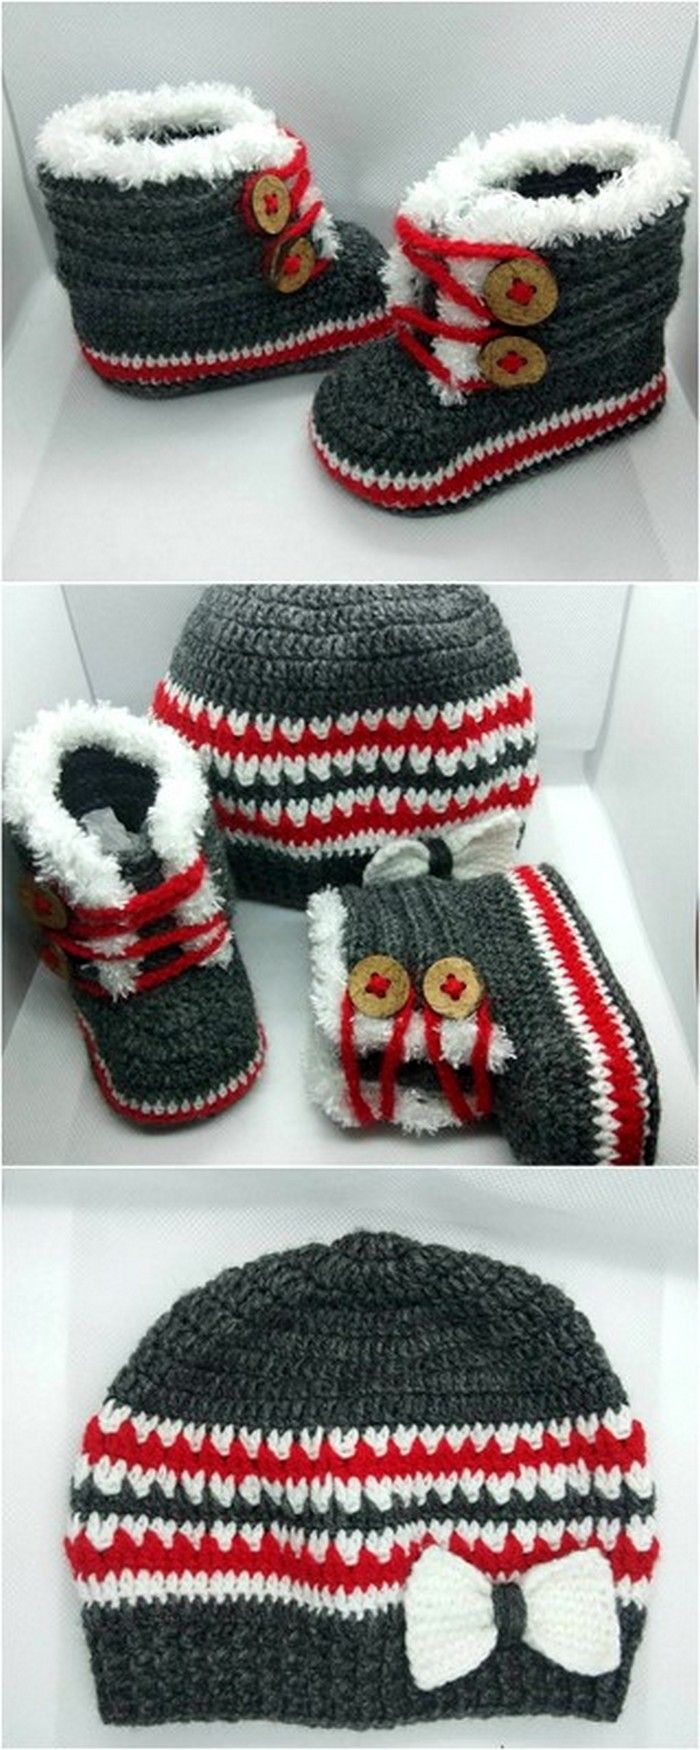 beanie and shoes crochet pattern design